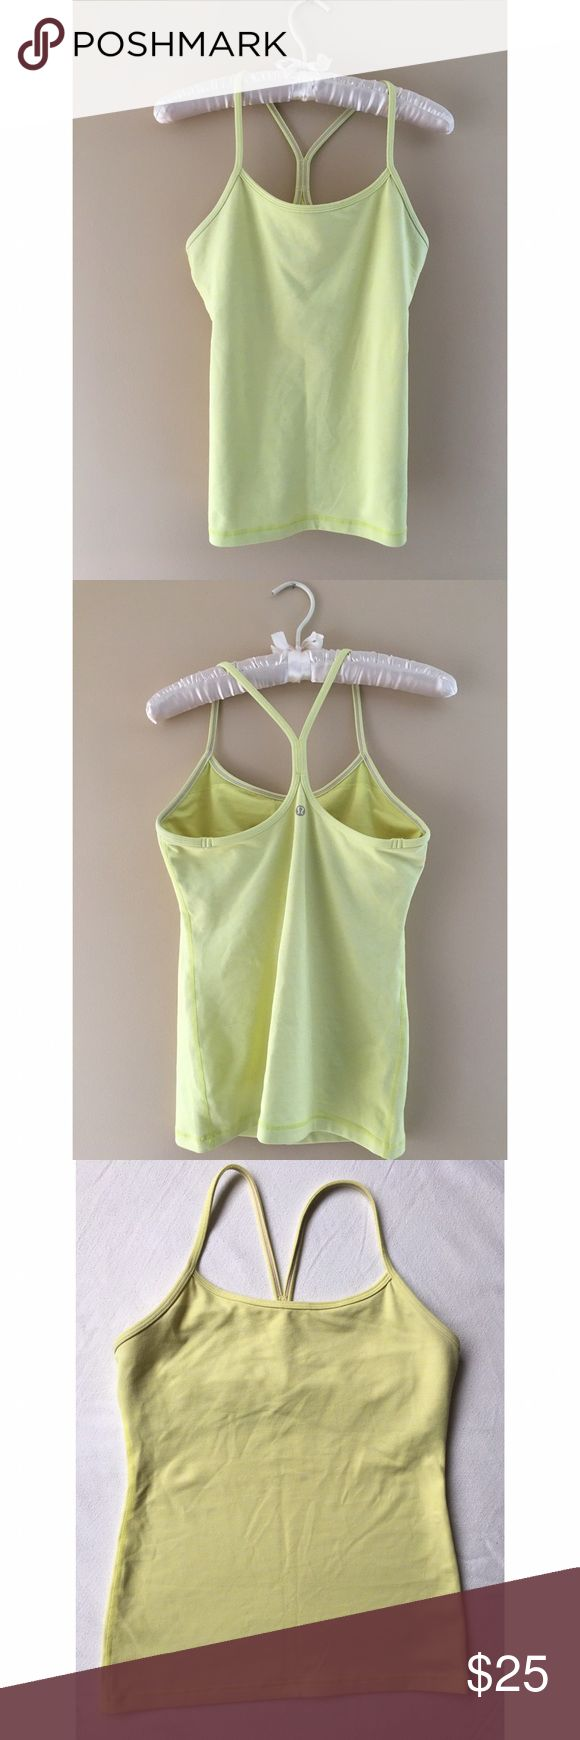 ✨SALE✨ Lululemon | Yellow Power Y Tank This is a light yellow tank top from Lululemon. Good used condition, fabric shows minor wear and super small blue dot (refer to photos). Racerback style with built in bra (no padding). Size 8. 💕 Bundle for a sweet discount! lululemon athletica Tops Tank Tops